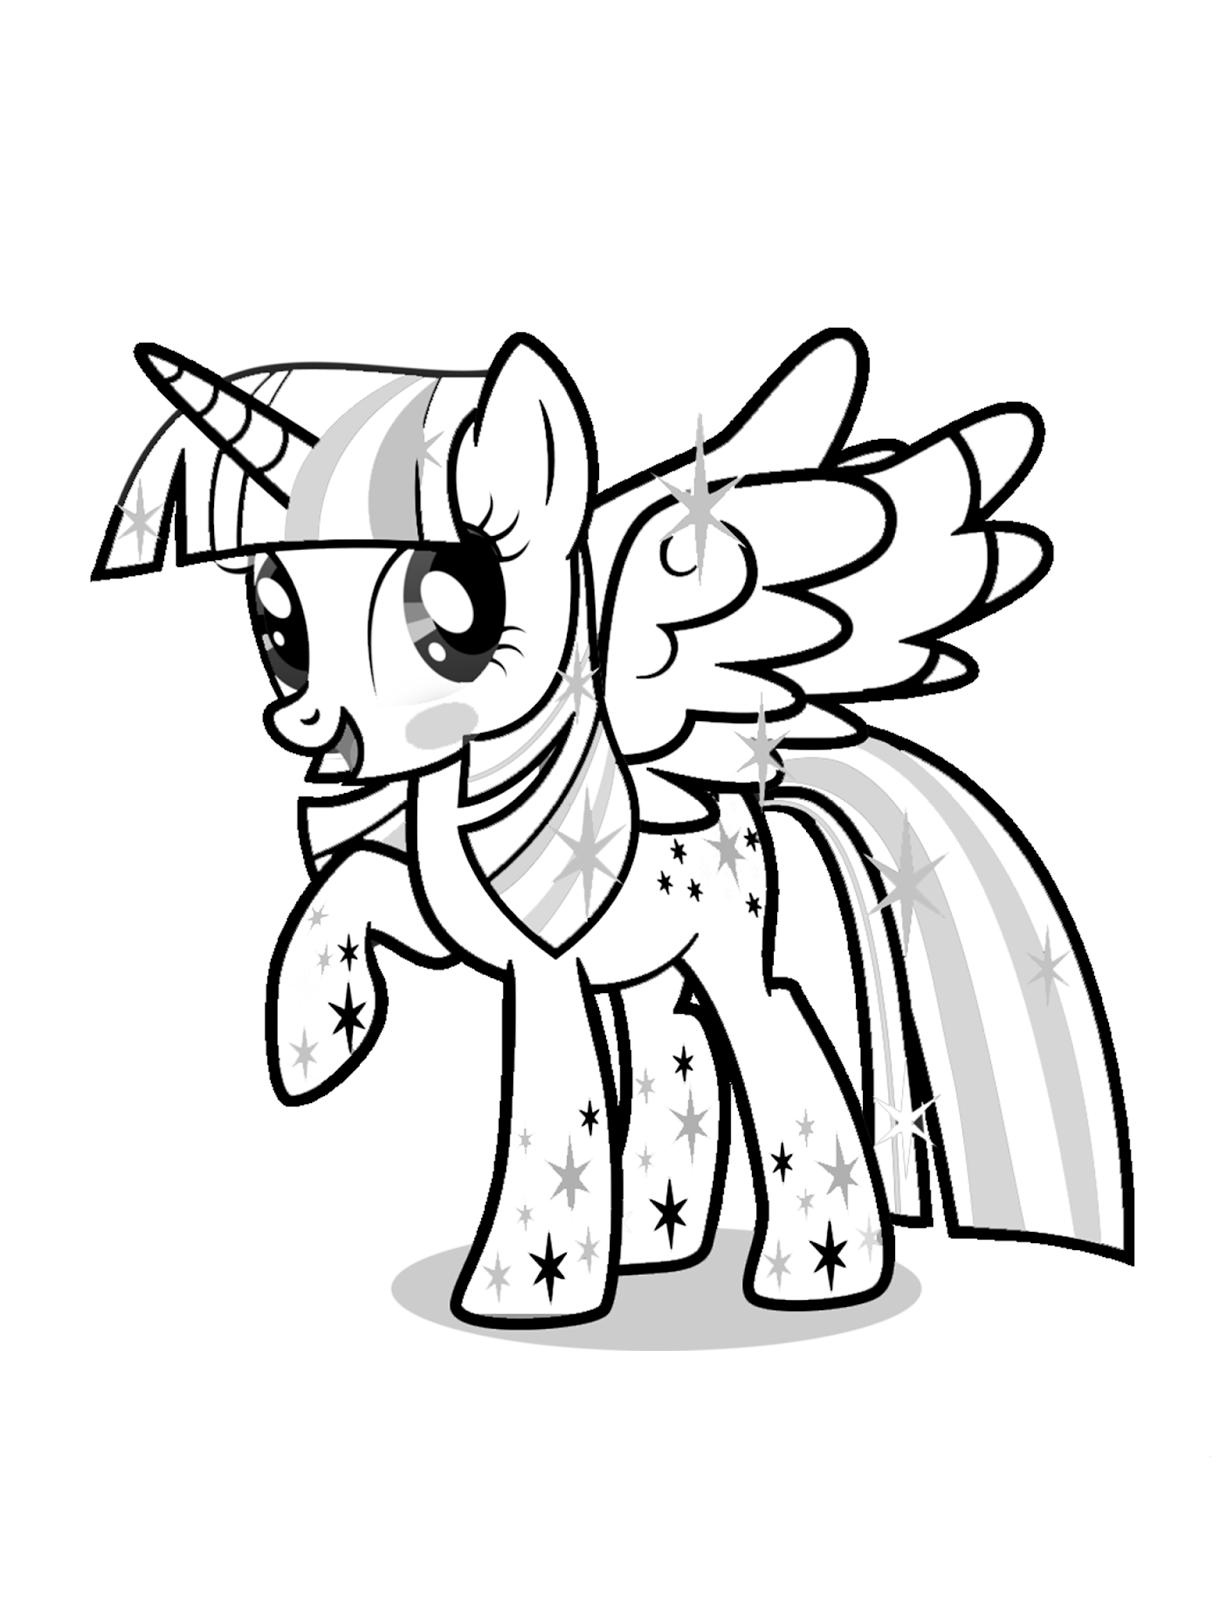 Twilight Sparkle Coloring Pages - Best Coloring Pages For Kids